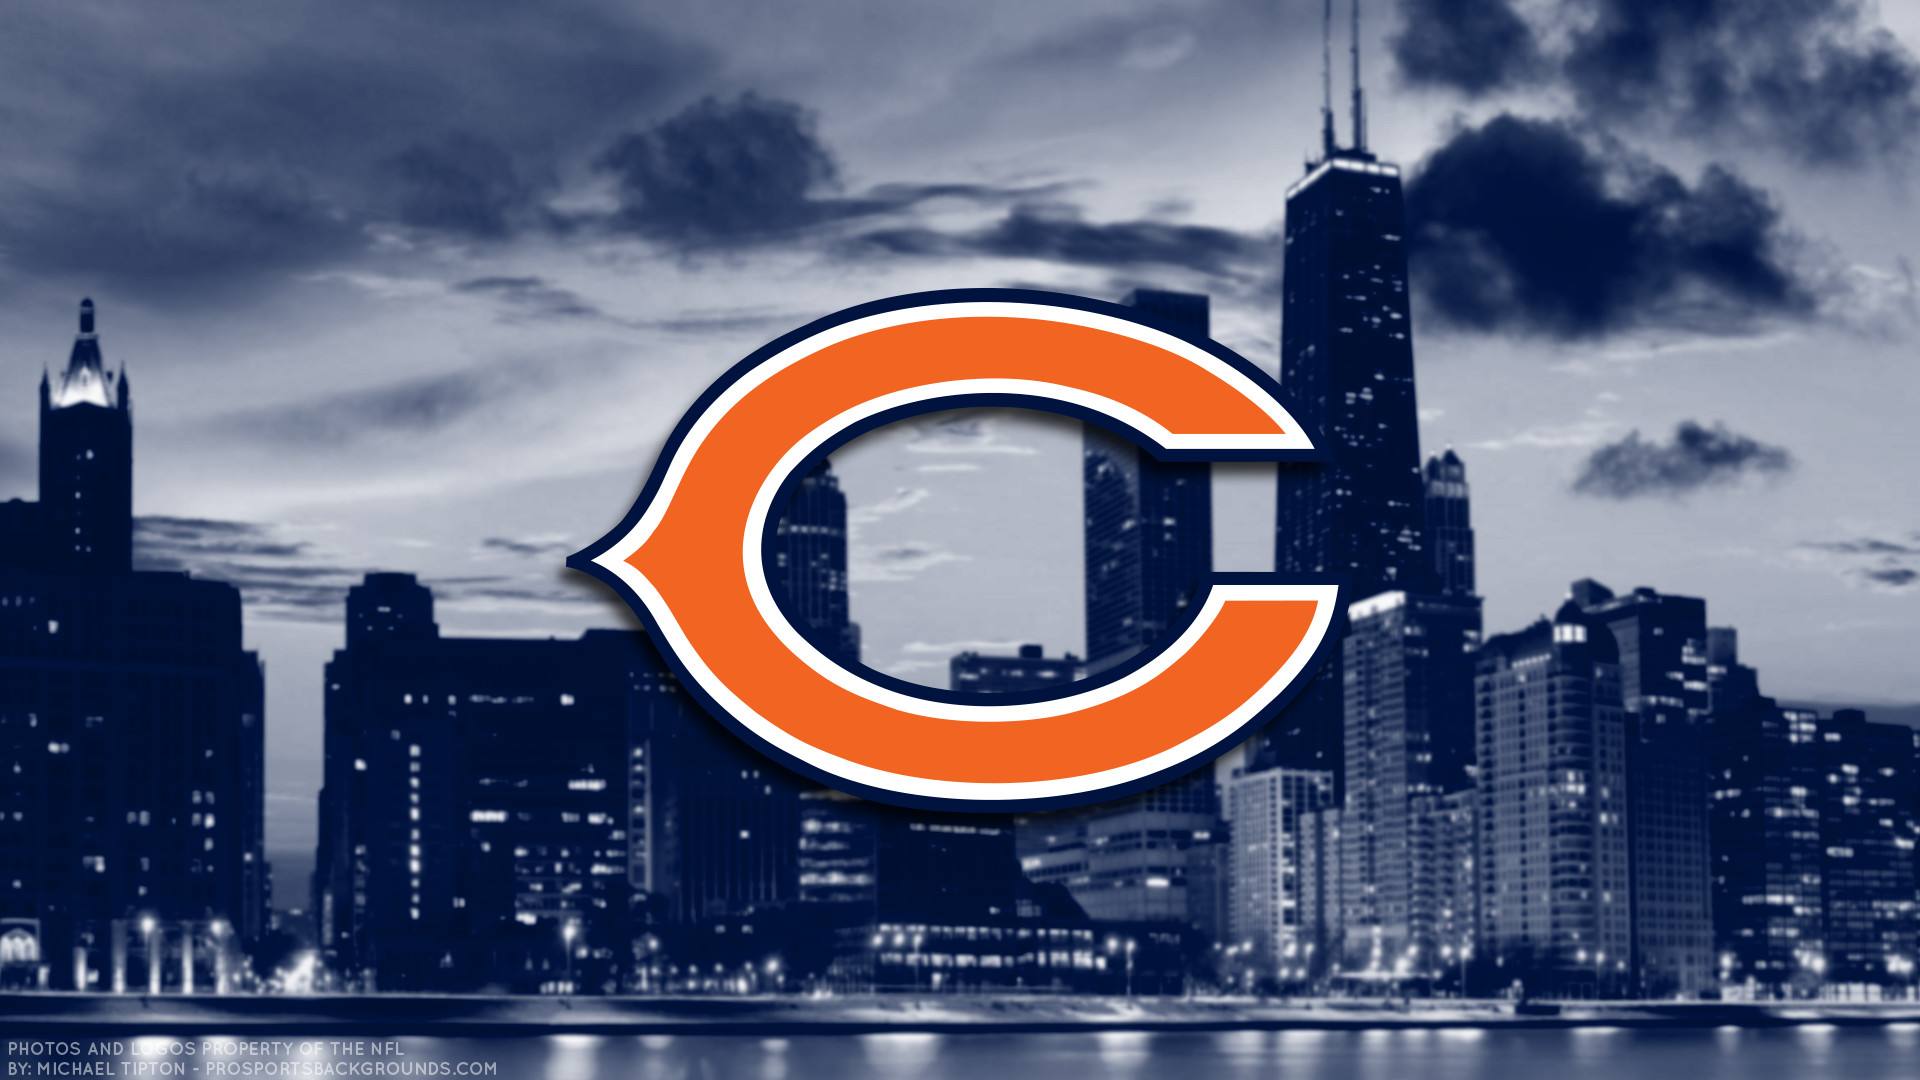 Chicago Bears wallpapers and Pictures download free | HD Wallpapers |  Pinterest | Hd wallpaper and Wallpaper